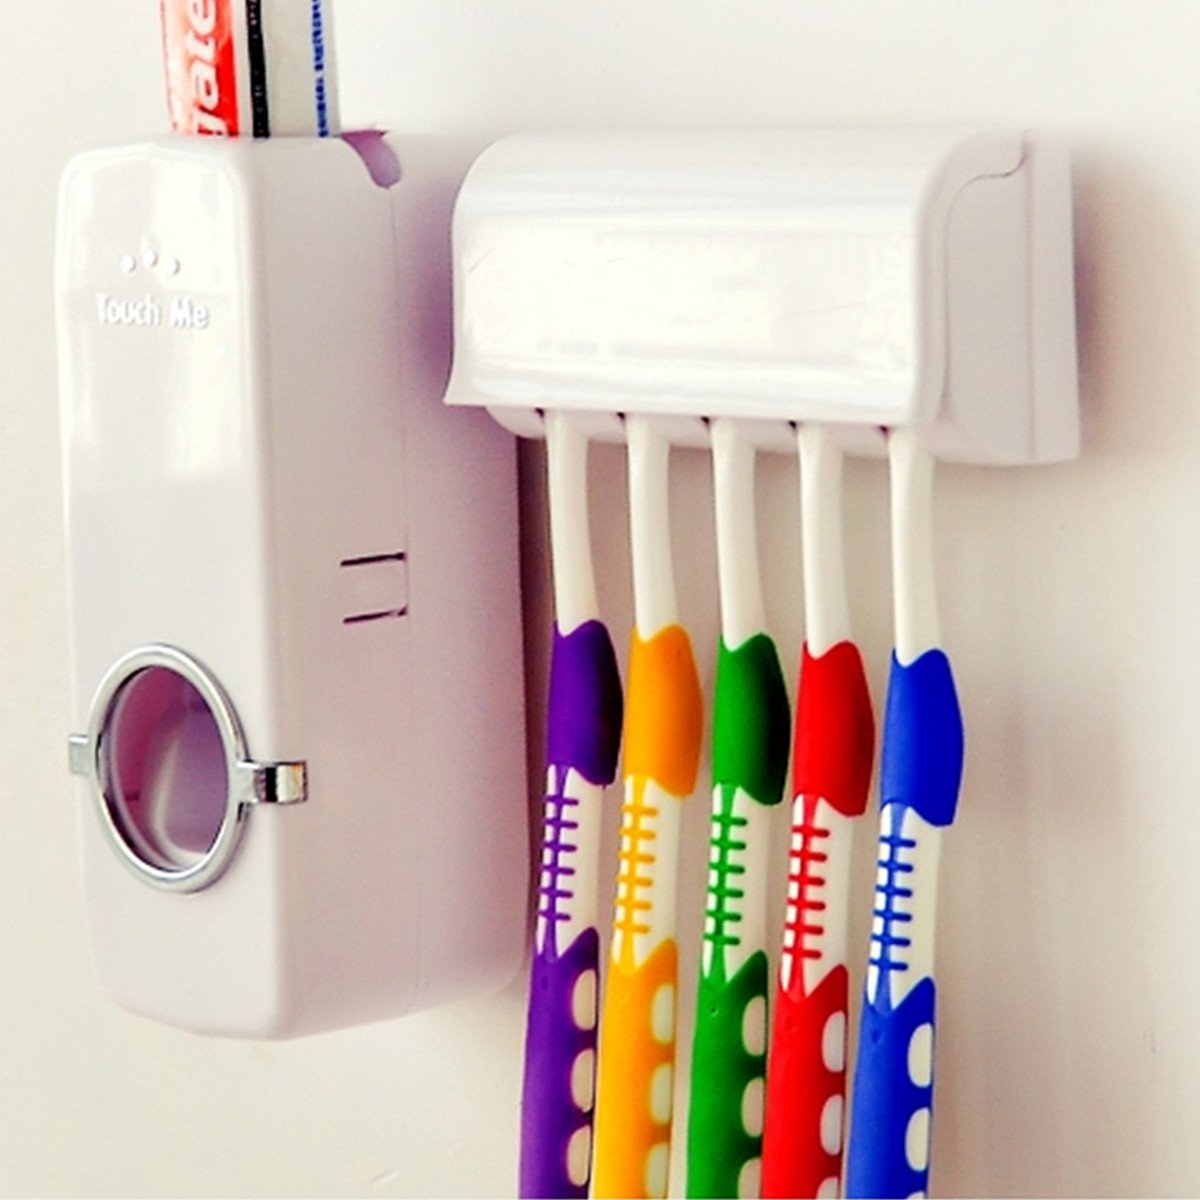 3 SETS TOOTHBRUSH AND TOOTHPASTE DISPENSER